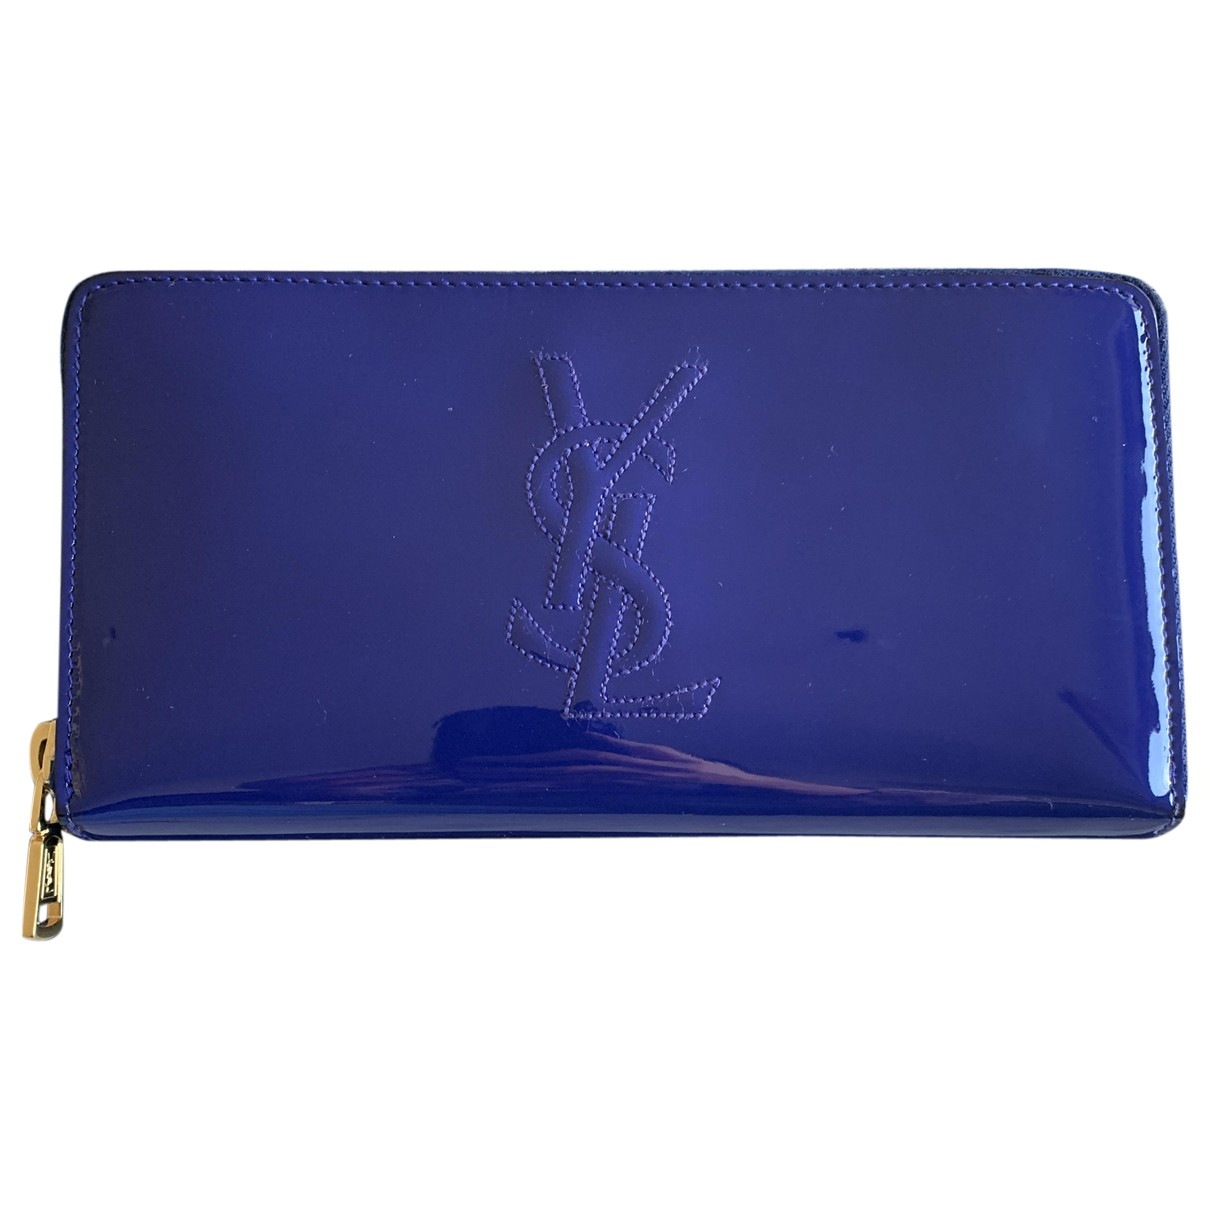 Saint Laurent \N Blue Patent leather wallet for Women \N